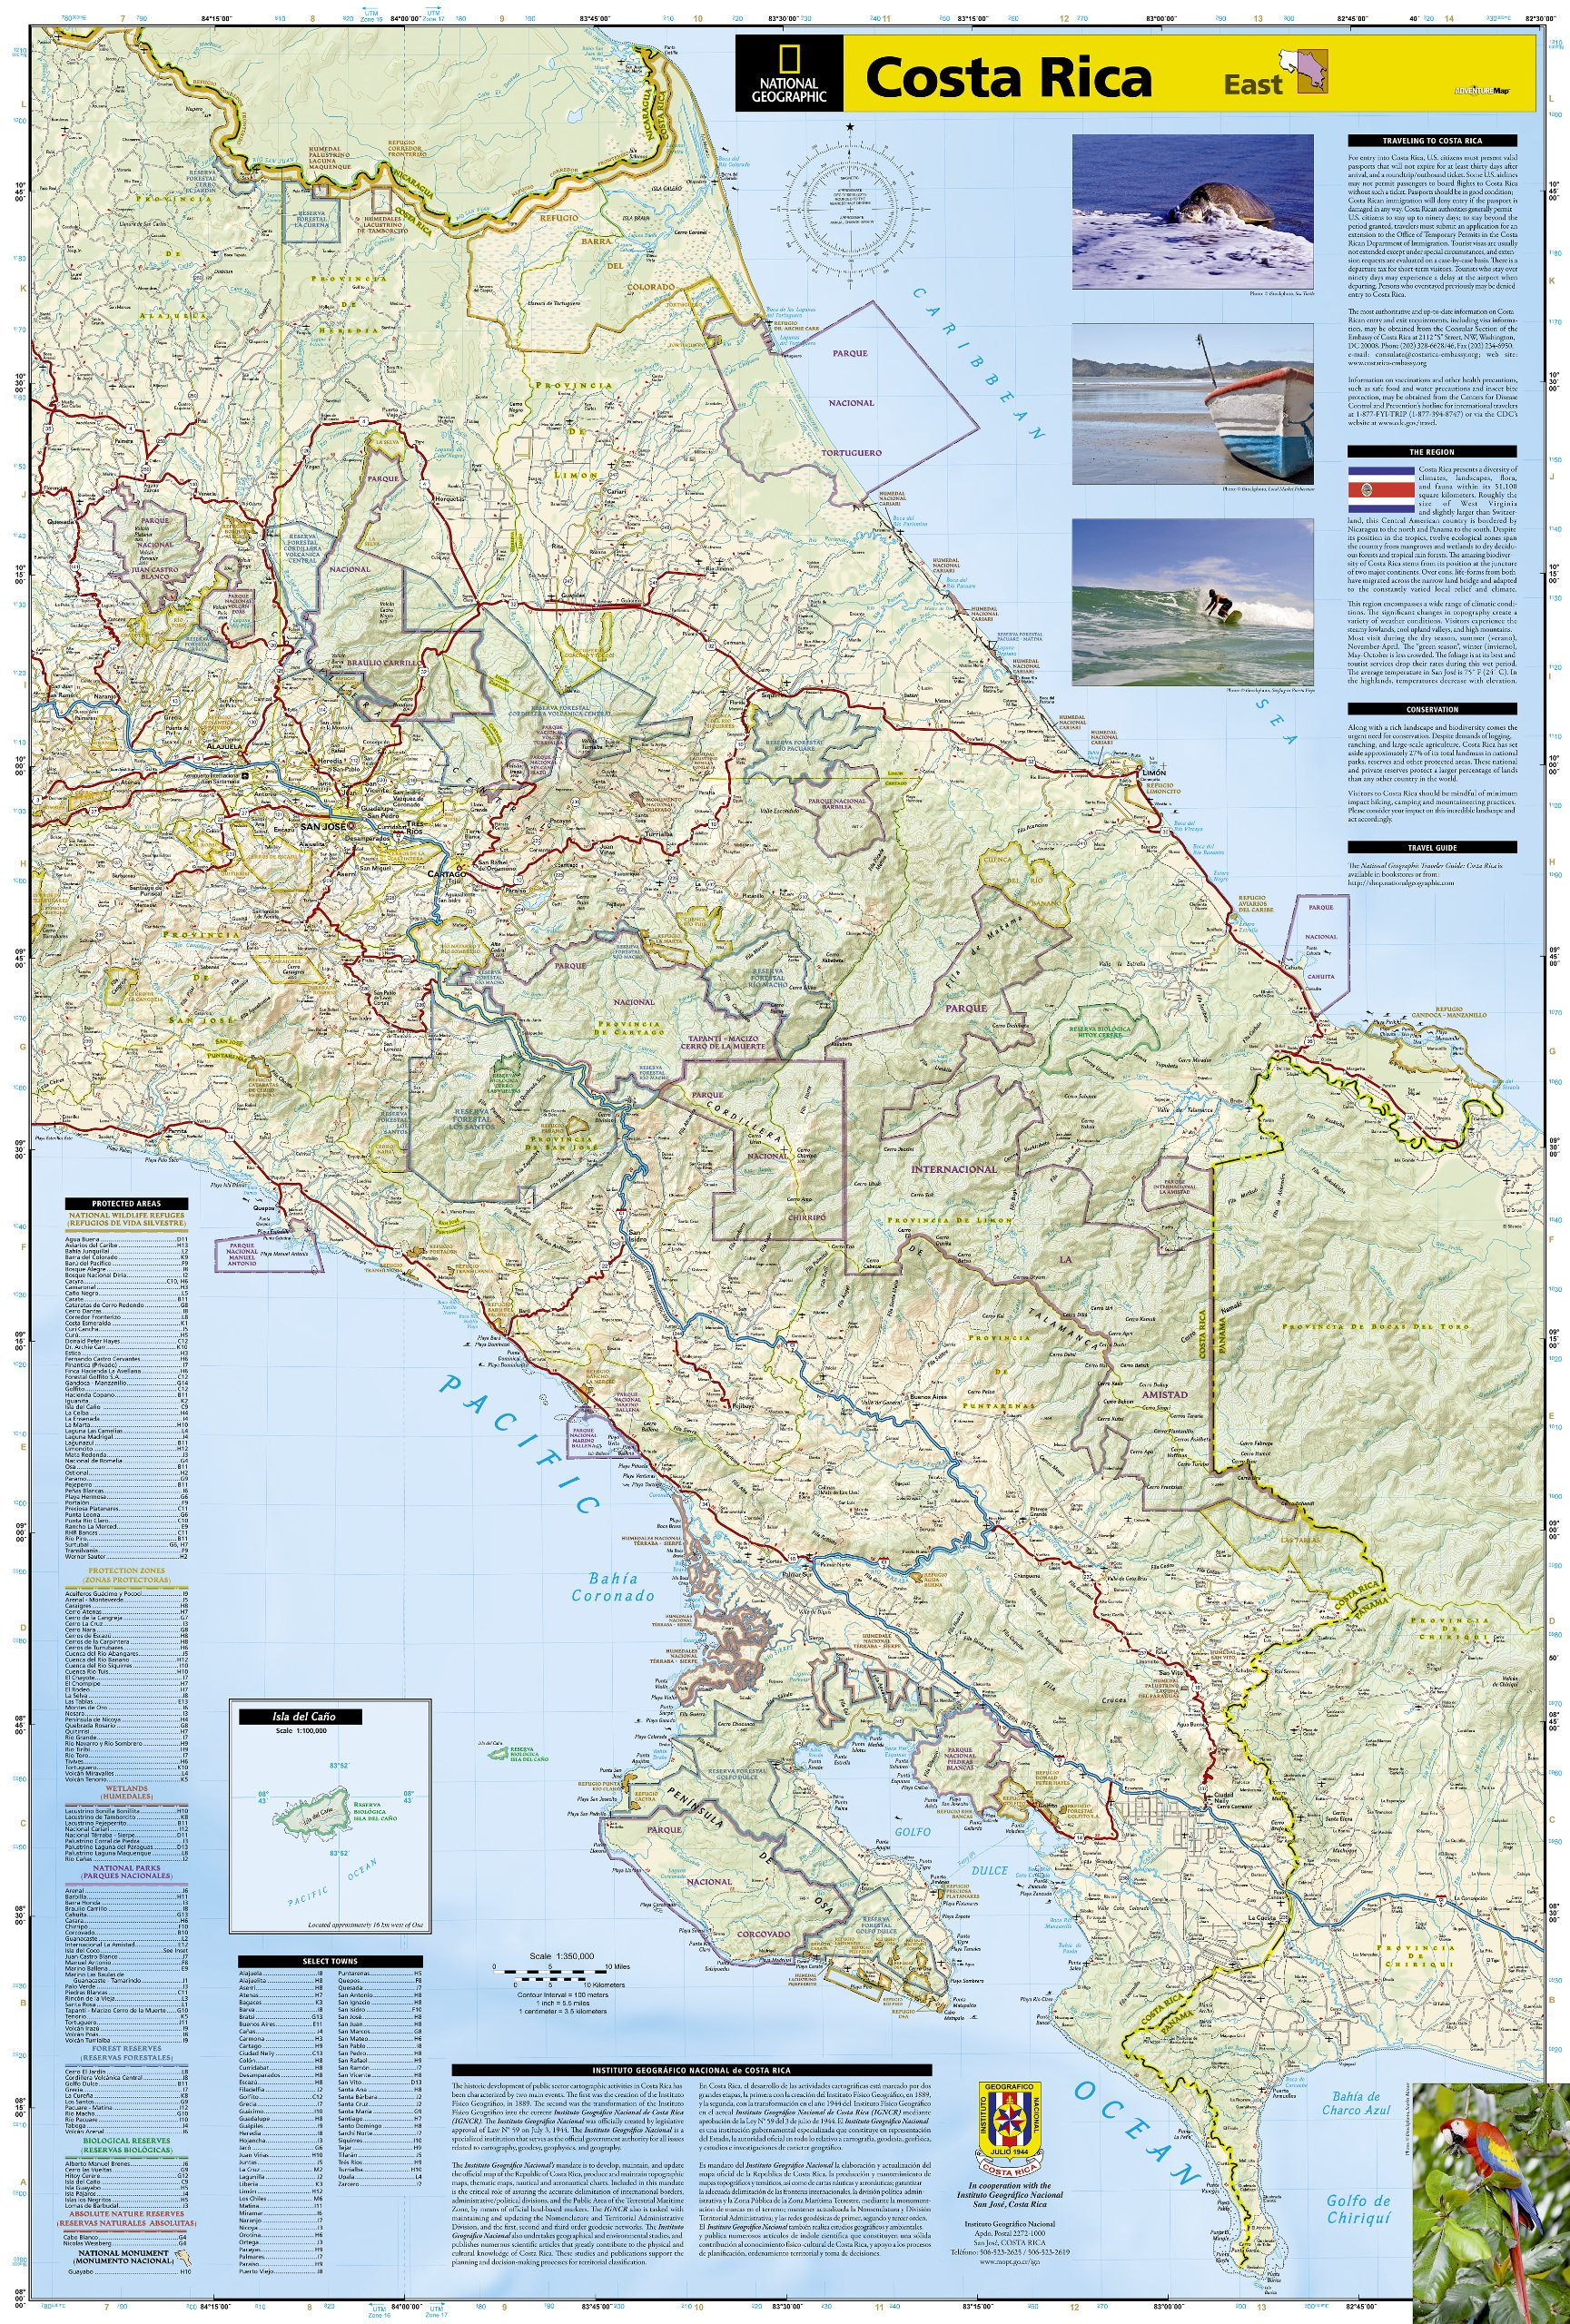 Costa Rica Adventure Travel Map Trails Illustrated National - Costa rica maps